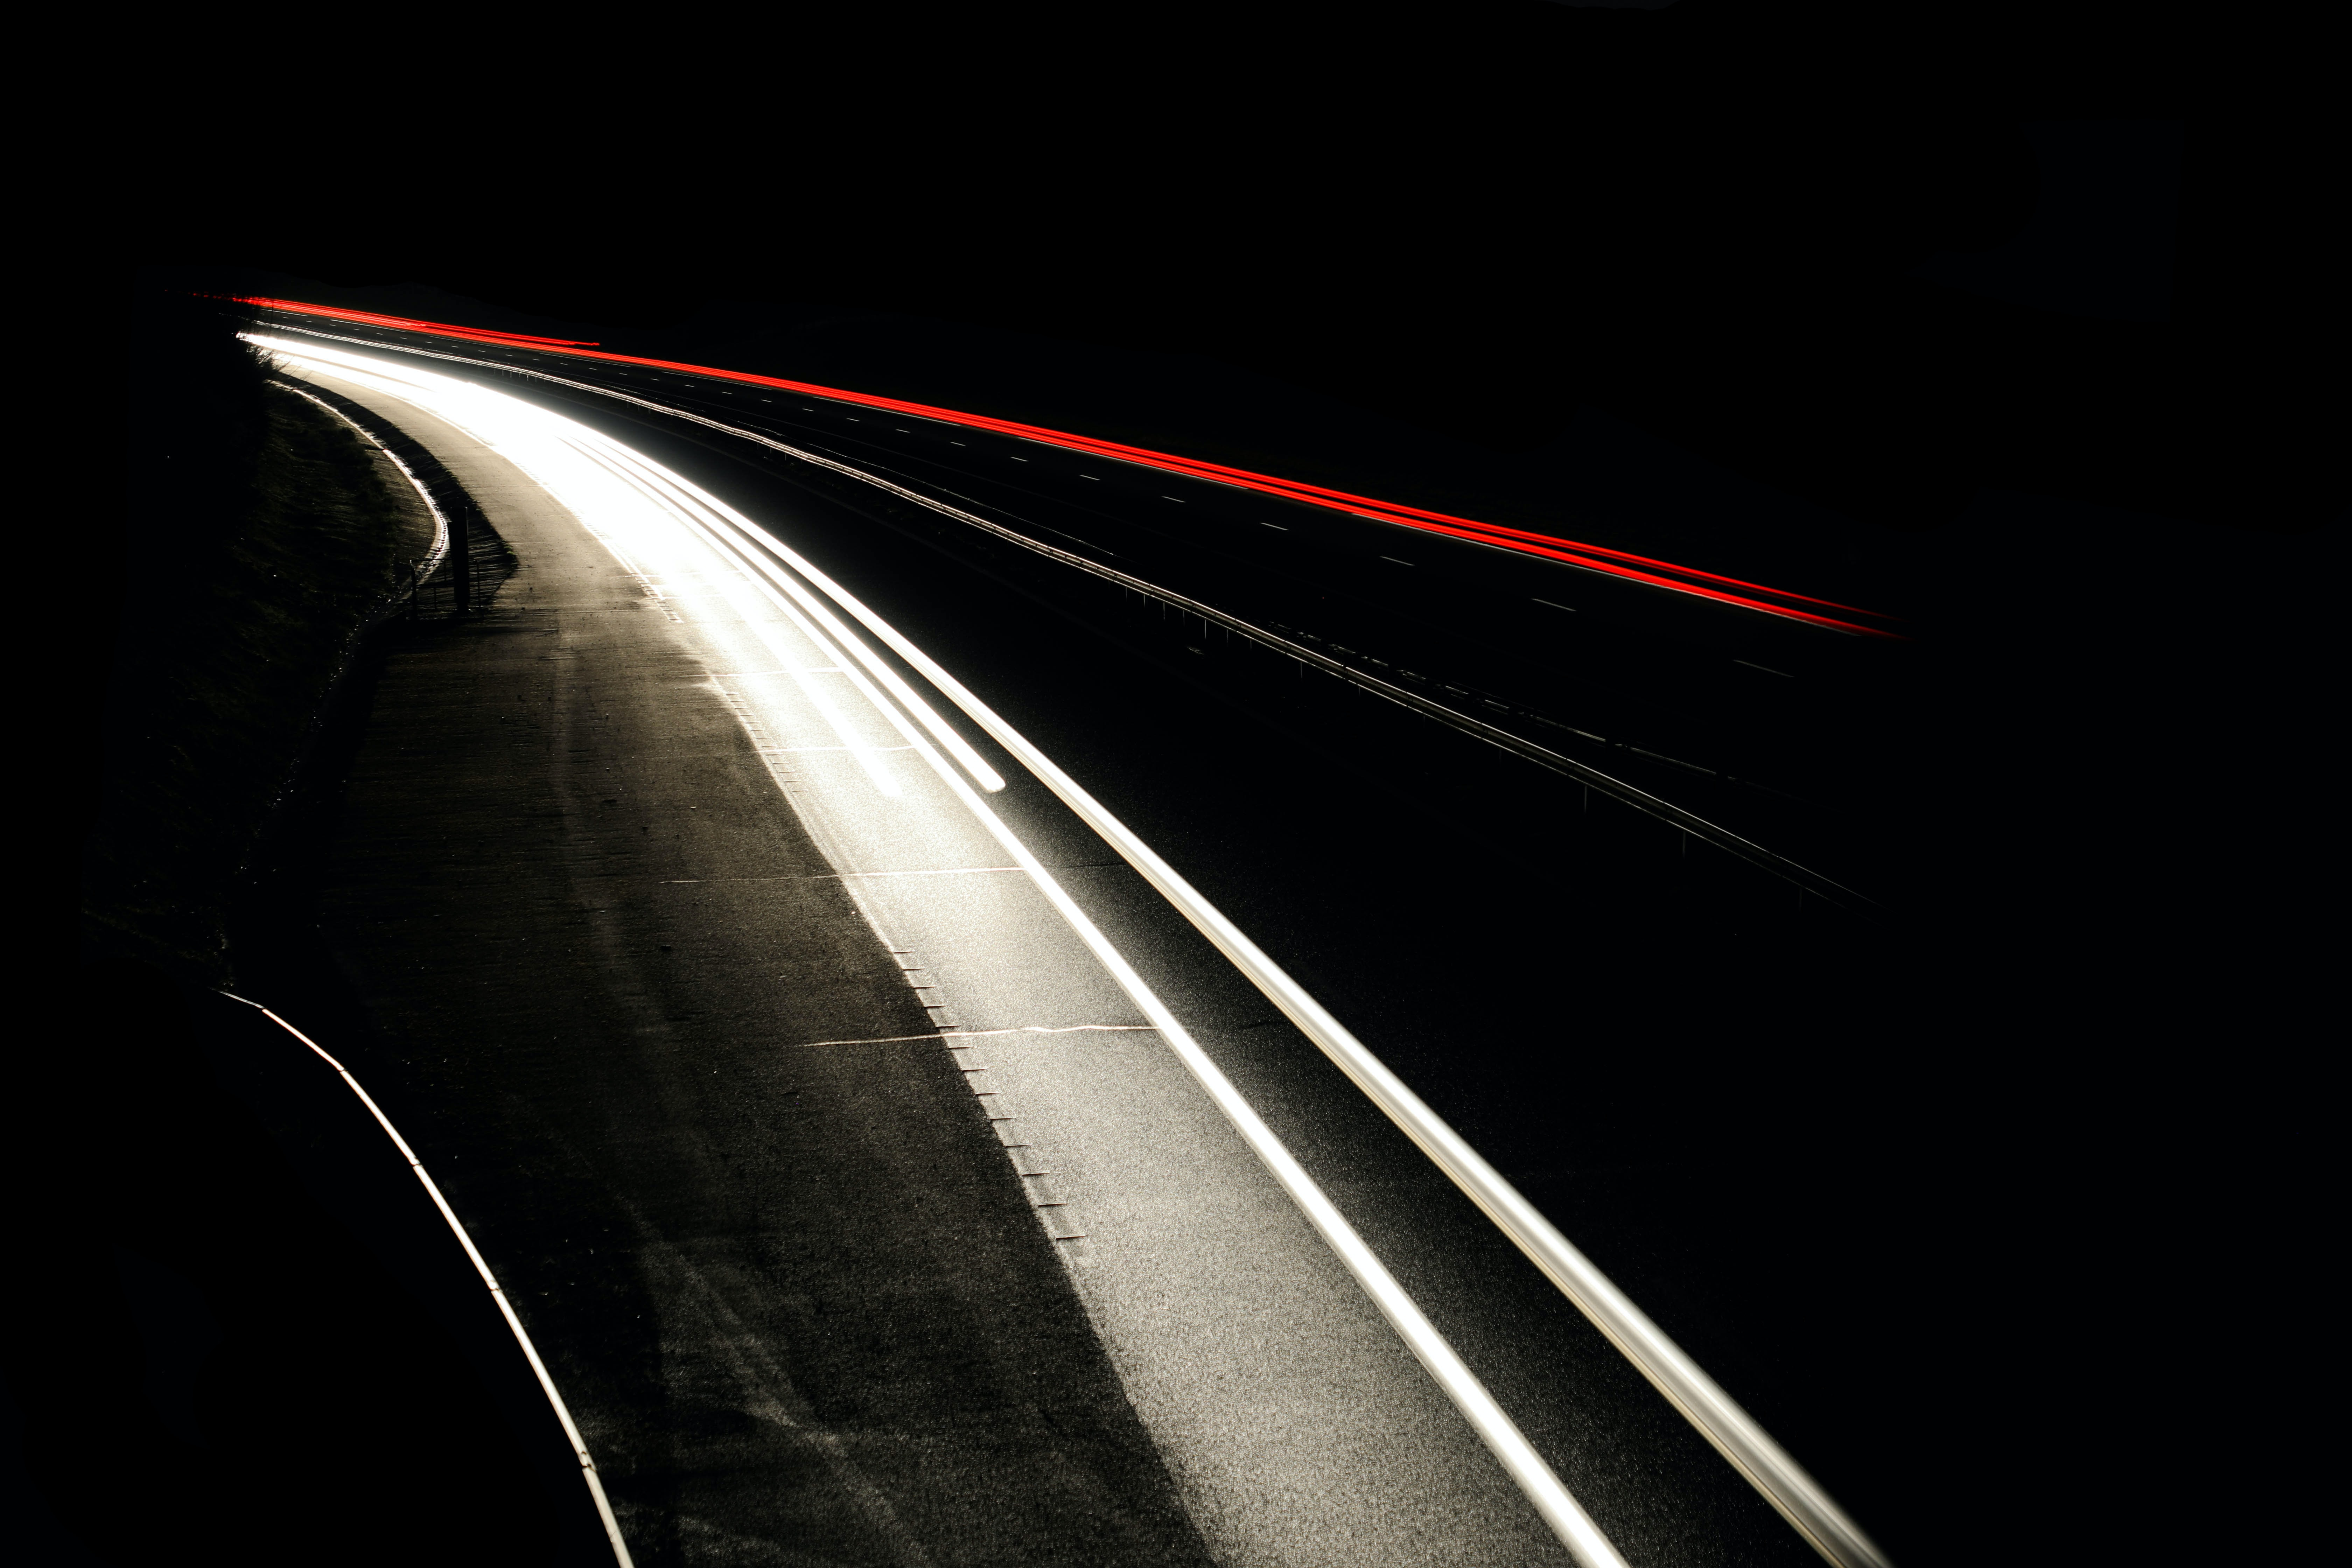 time lapse photography of vehicles on road during night